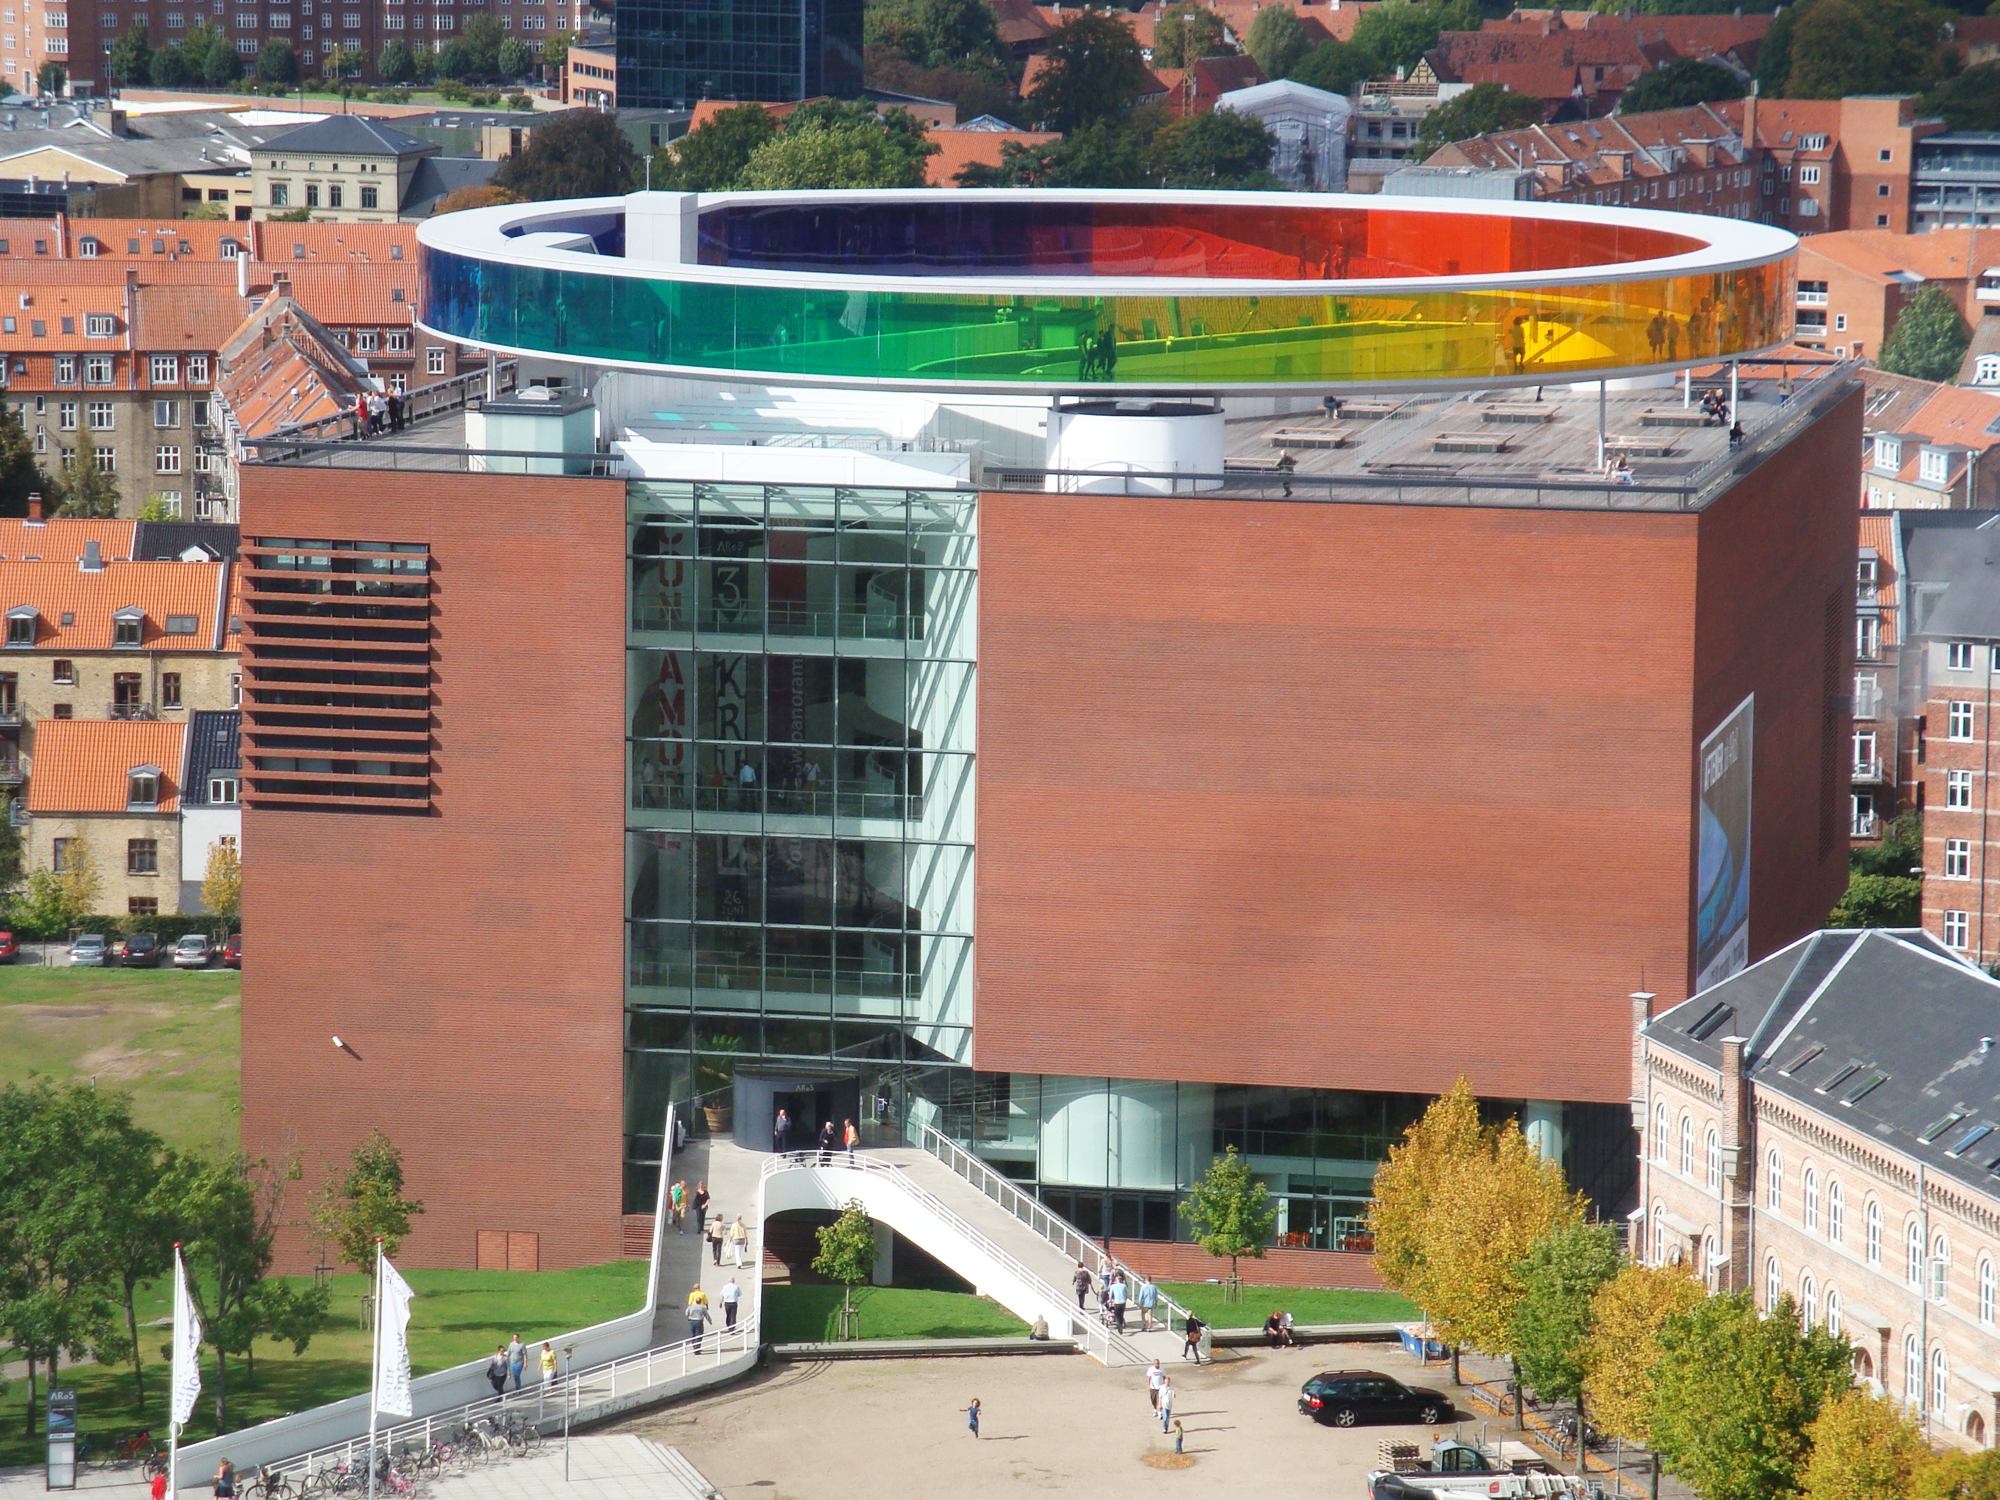 View of the AROS museum from the top of Arne Jacobsens's town hall in Aarhus